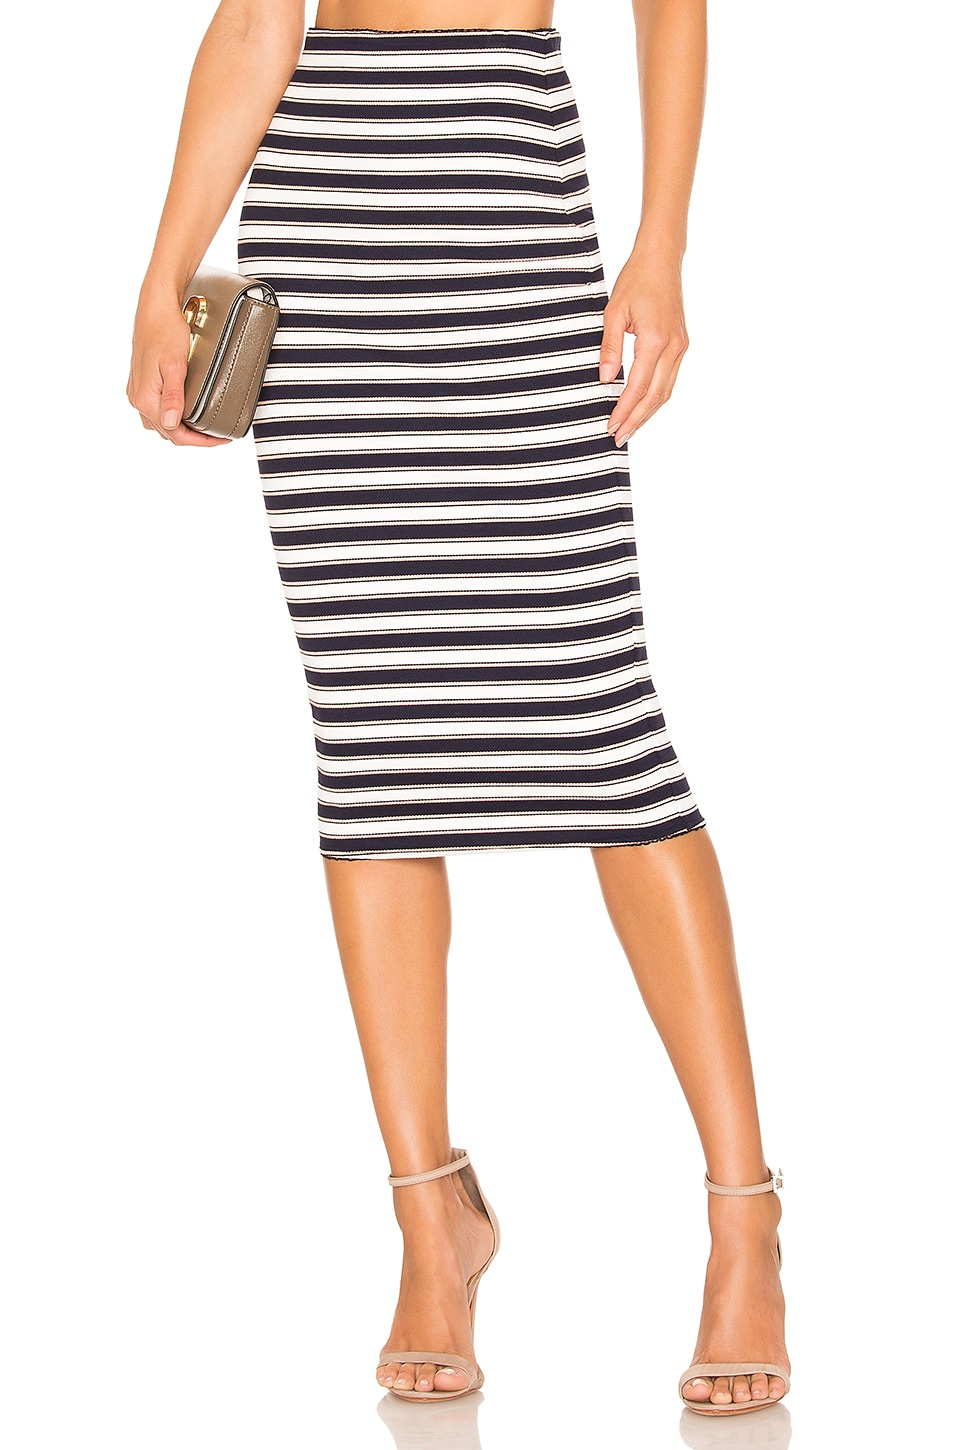 Lovers + Friends Karlie Midi Skirt in Navy & White Stripe